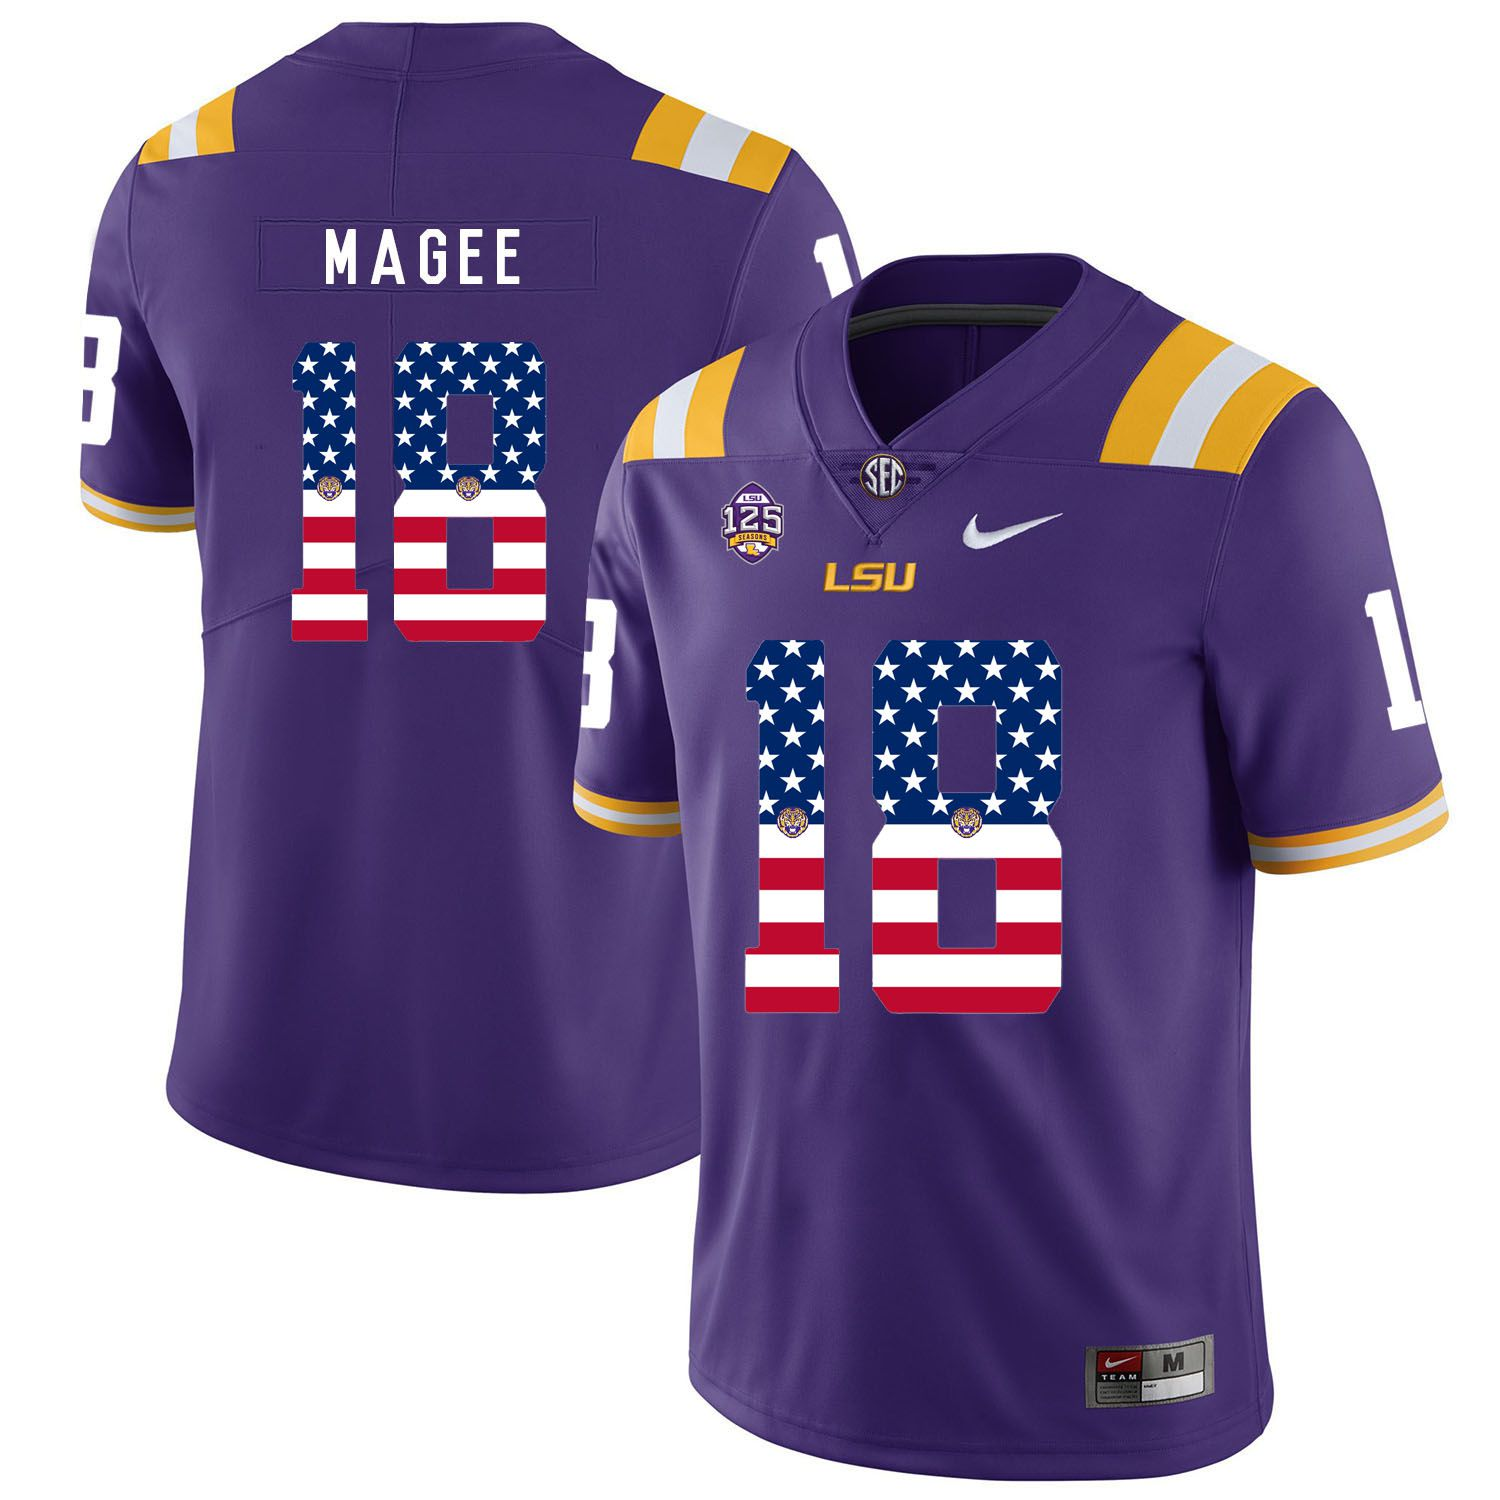 Men LSU Tigers 18 Magee Purple Flag Customized NCAA Jerseys